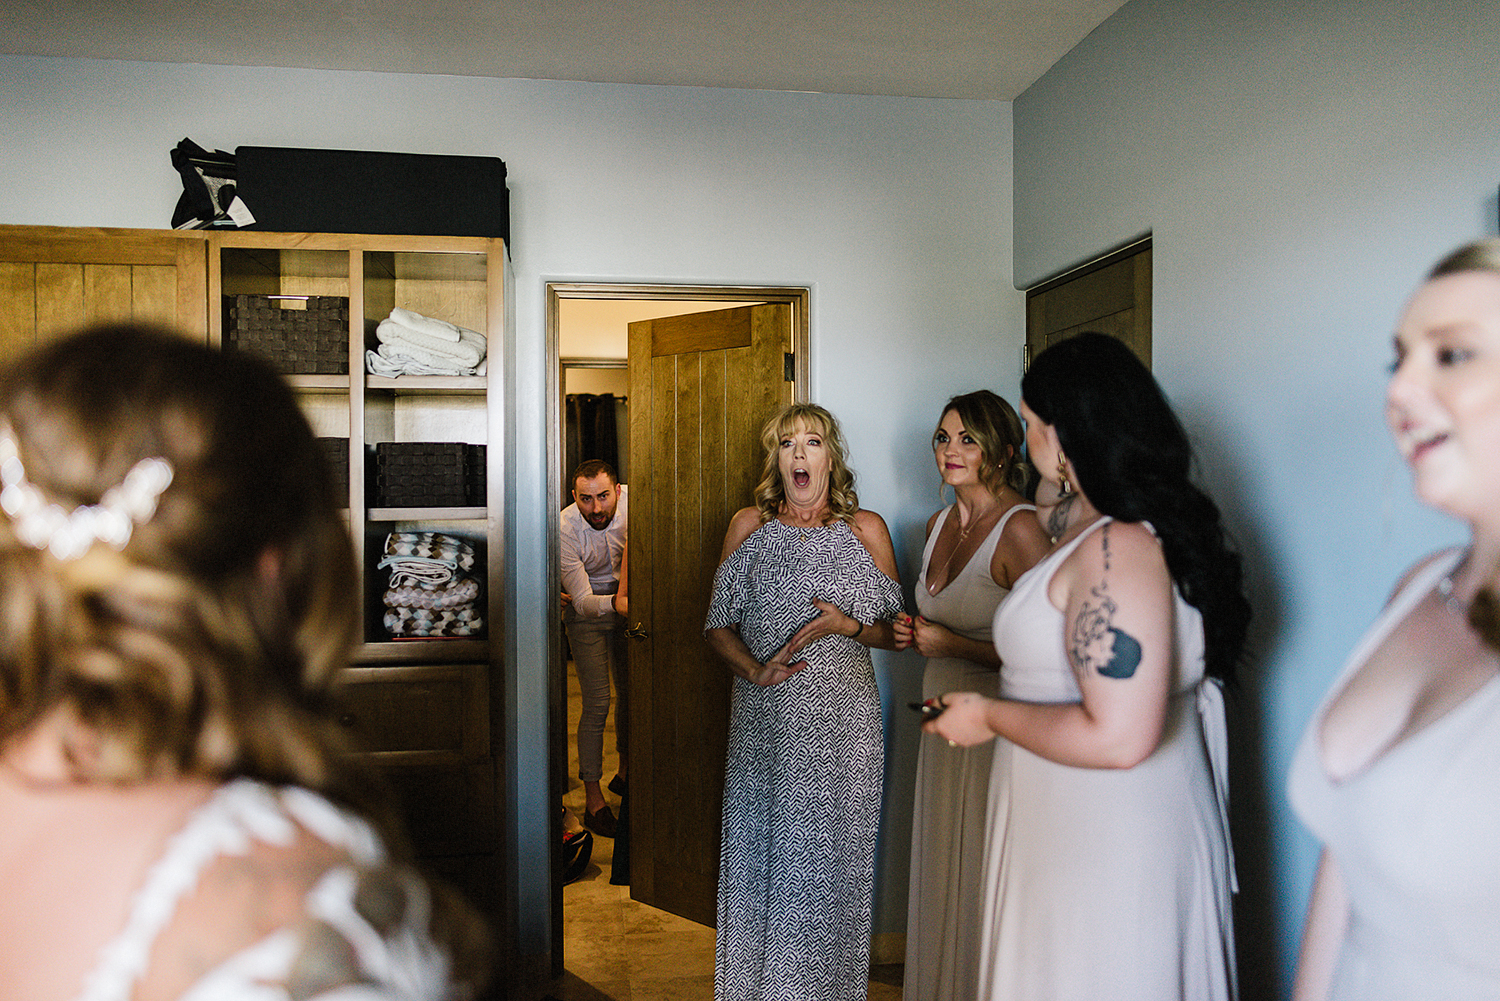 destination-wedding-cabo-san-lucas-ventanas-private-residence-alternative-toronto-wedding-photographer-bride-getting-ready-tattooed-bride-dressing-with-help-from-bridesmaids-candid-moments-artistic-documentary-mom-first-look.jpg